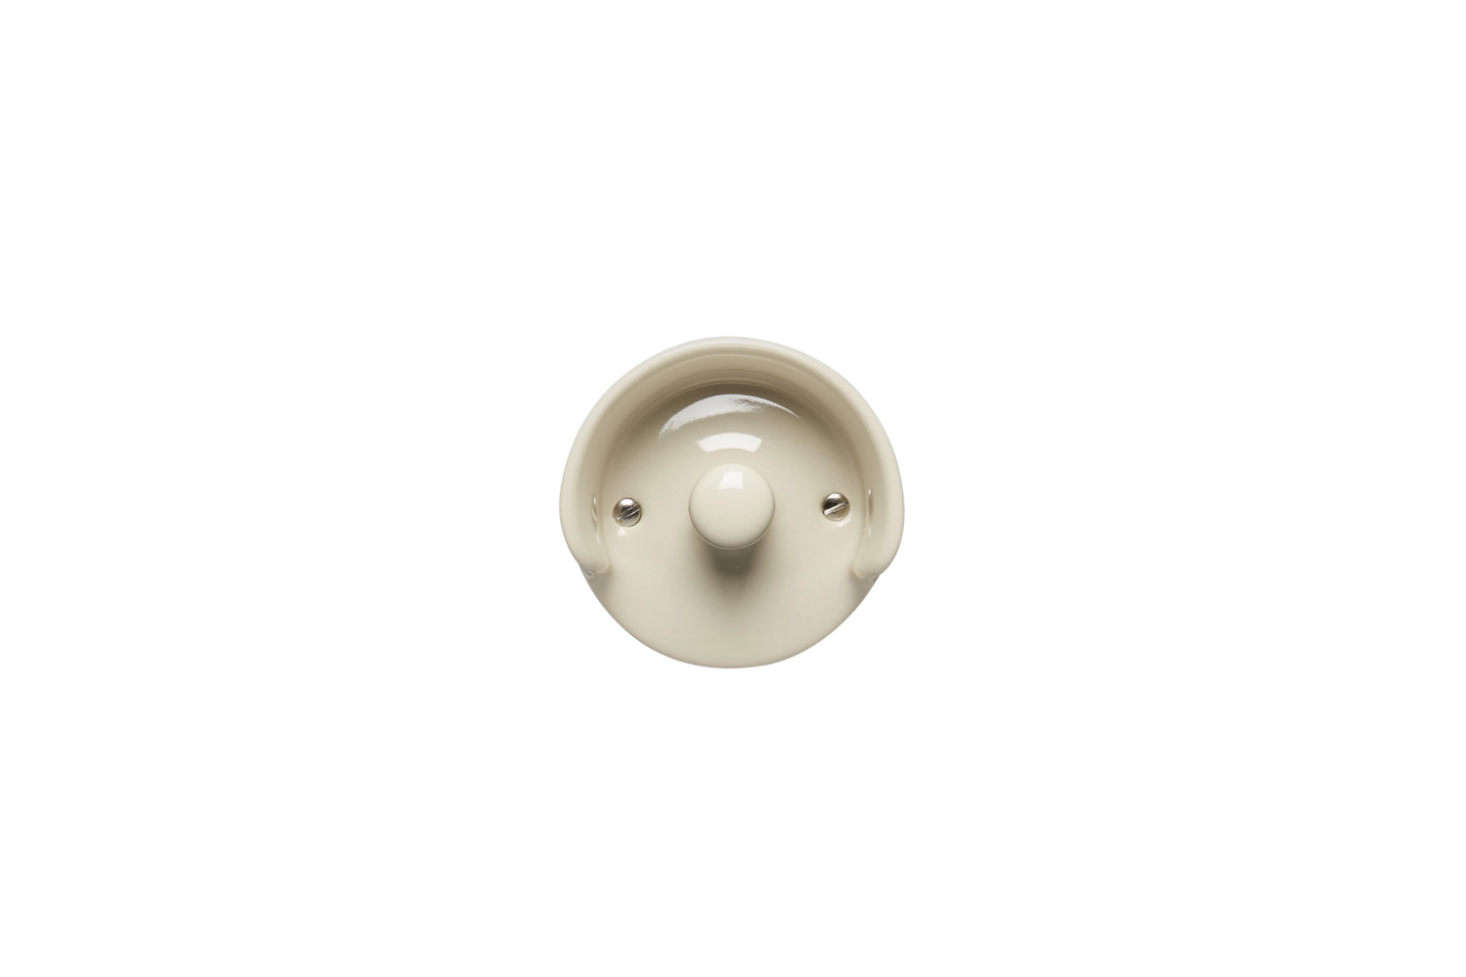 The Massproductions A01 Wall Hook in white, off white, or grey vitreous porcelain is $51 at A+R Store.